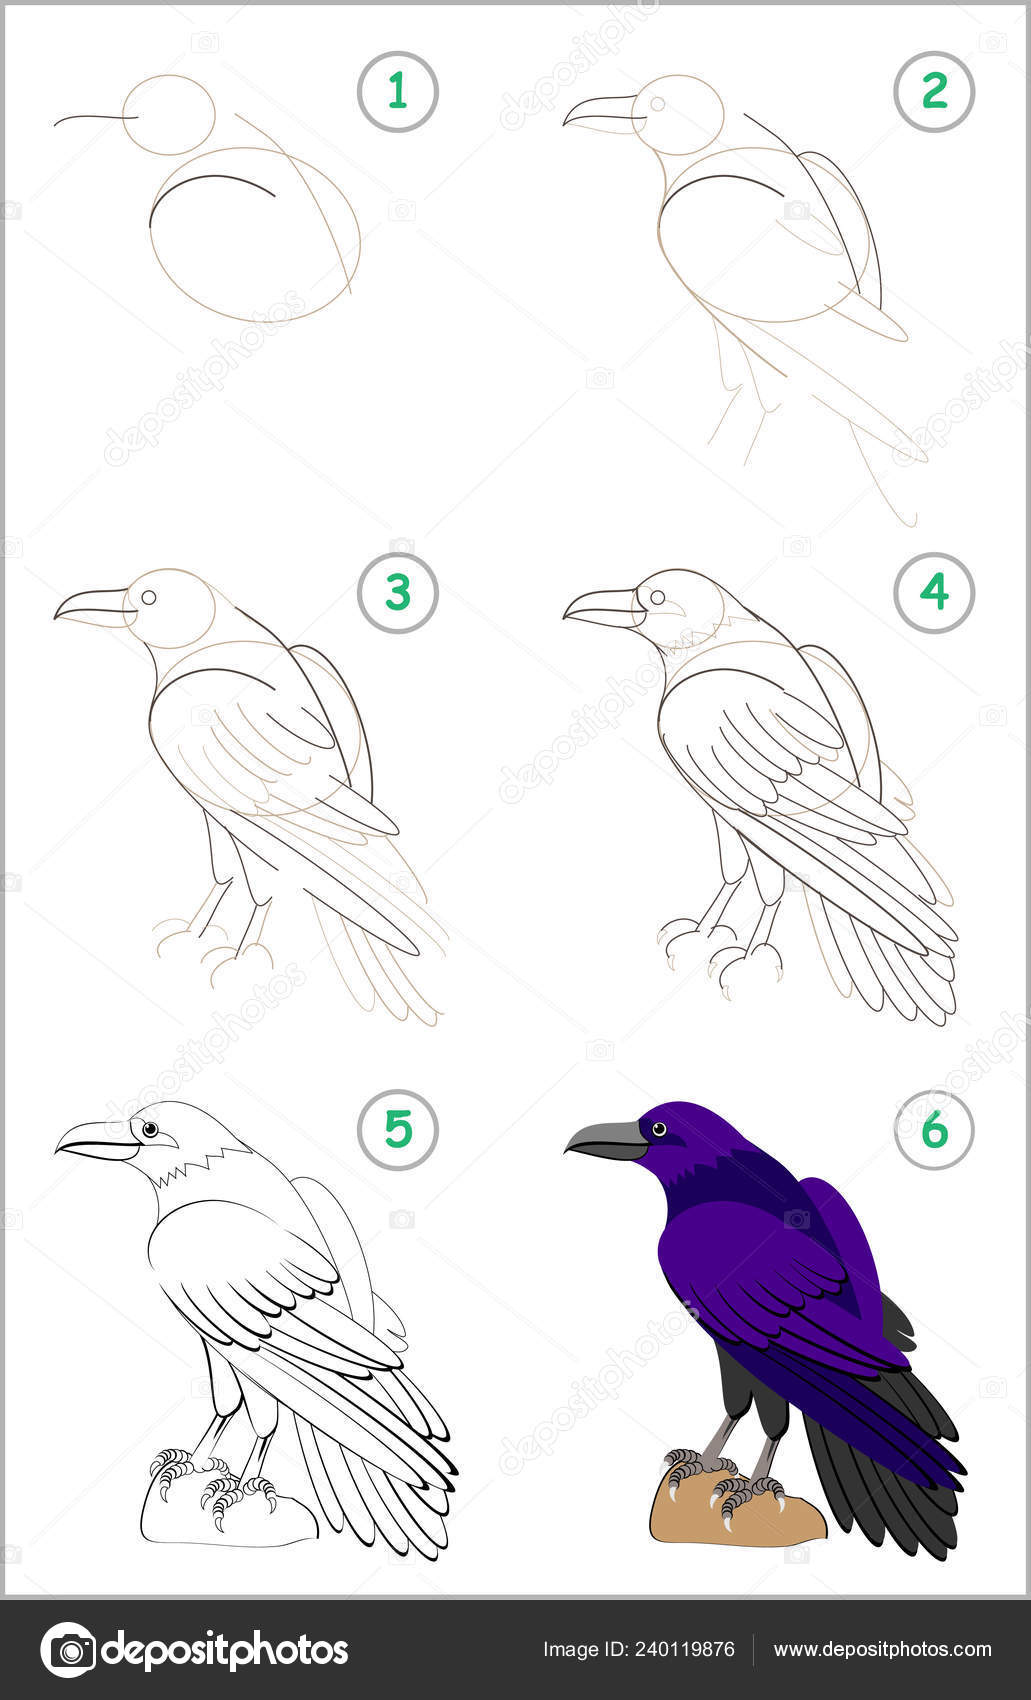 Cute raven drawing | Educational Page Kids Shows How Learn